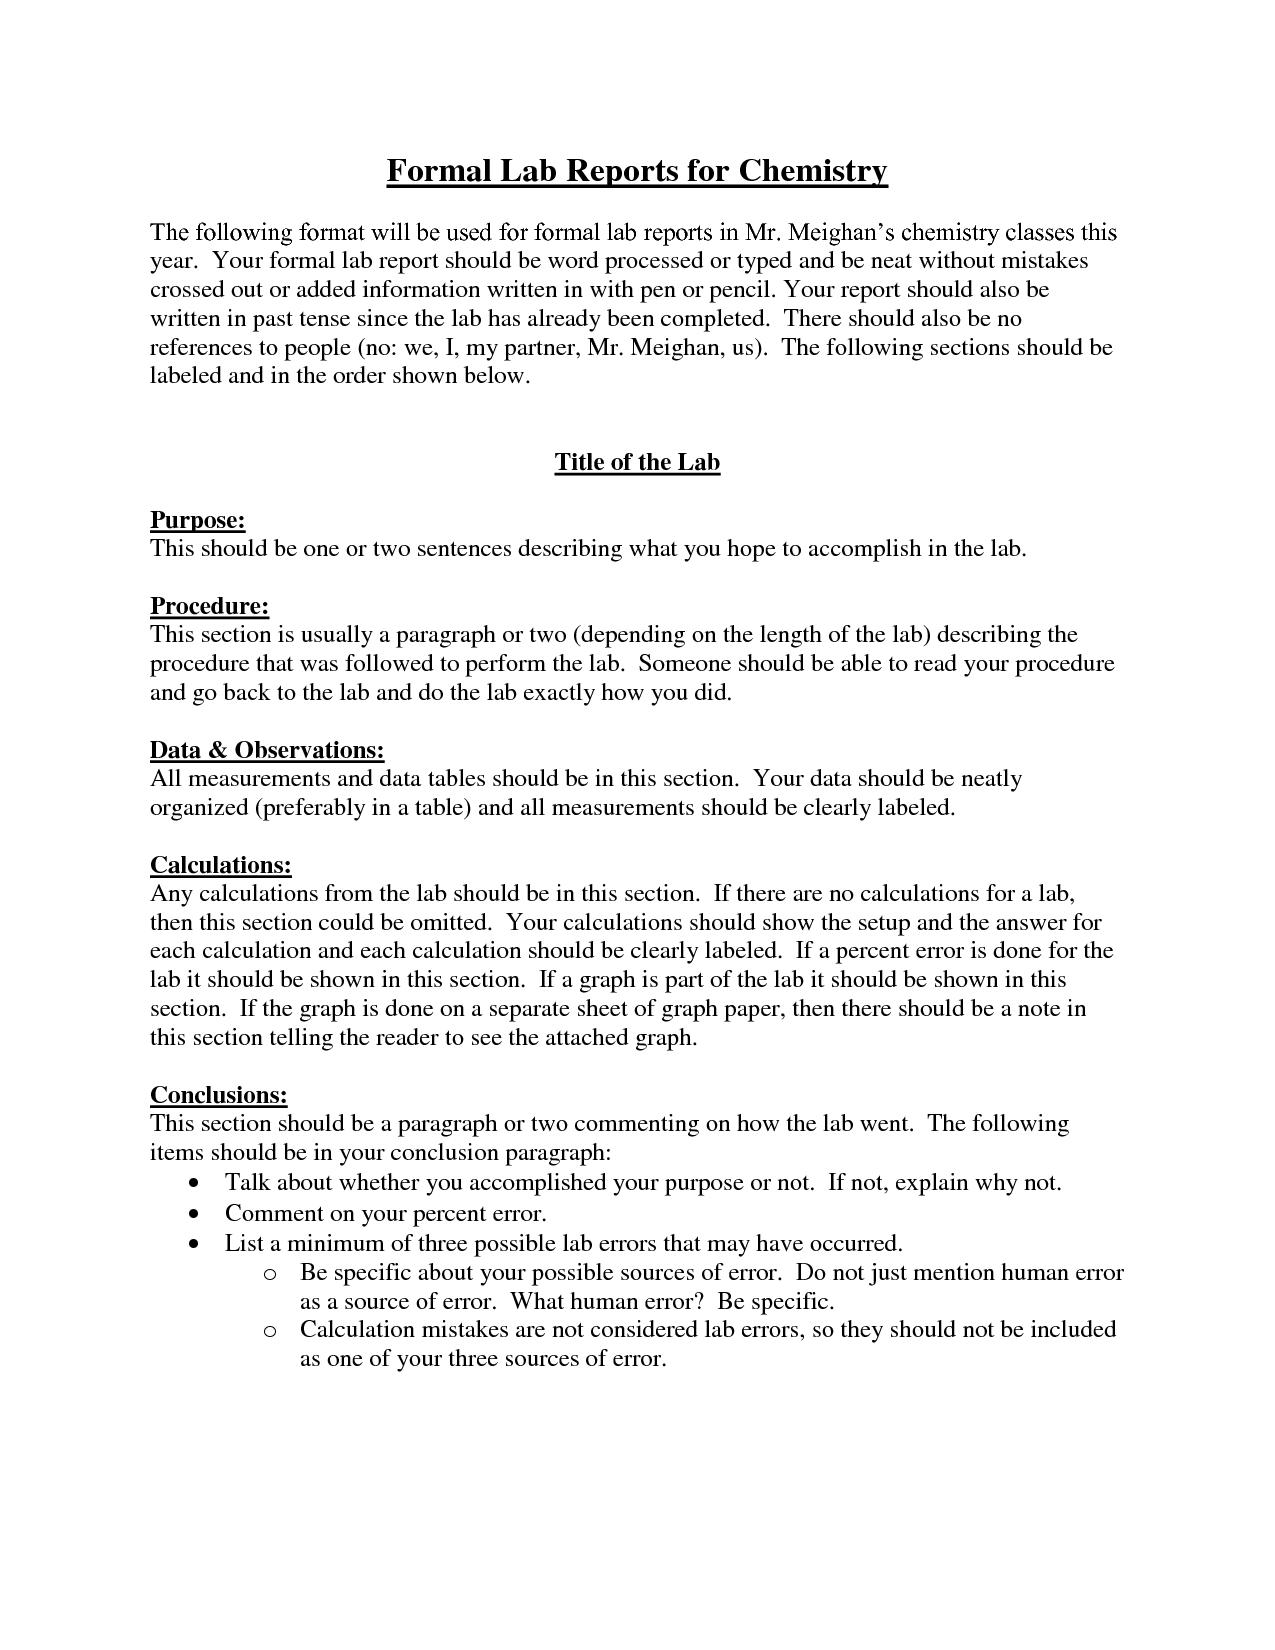 Physics format of writing research paper